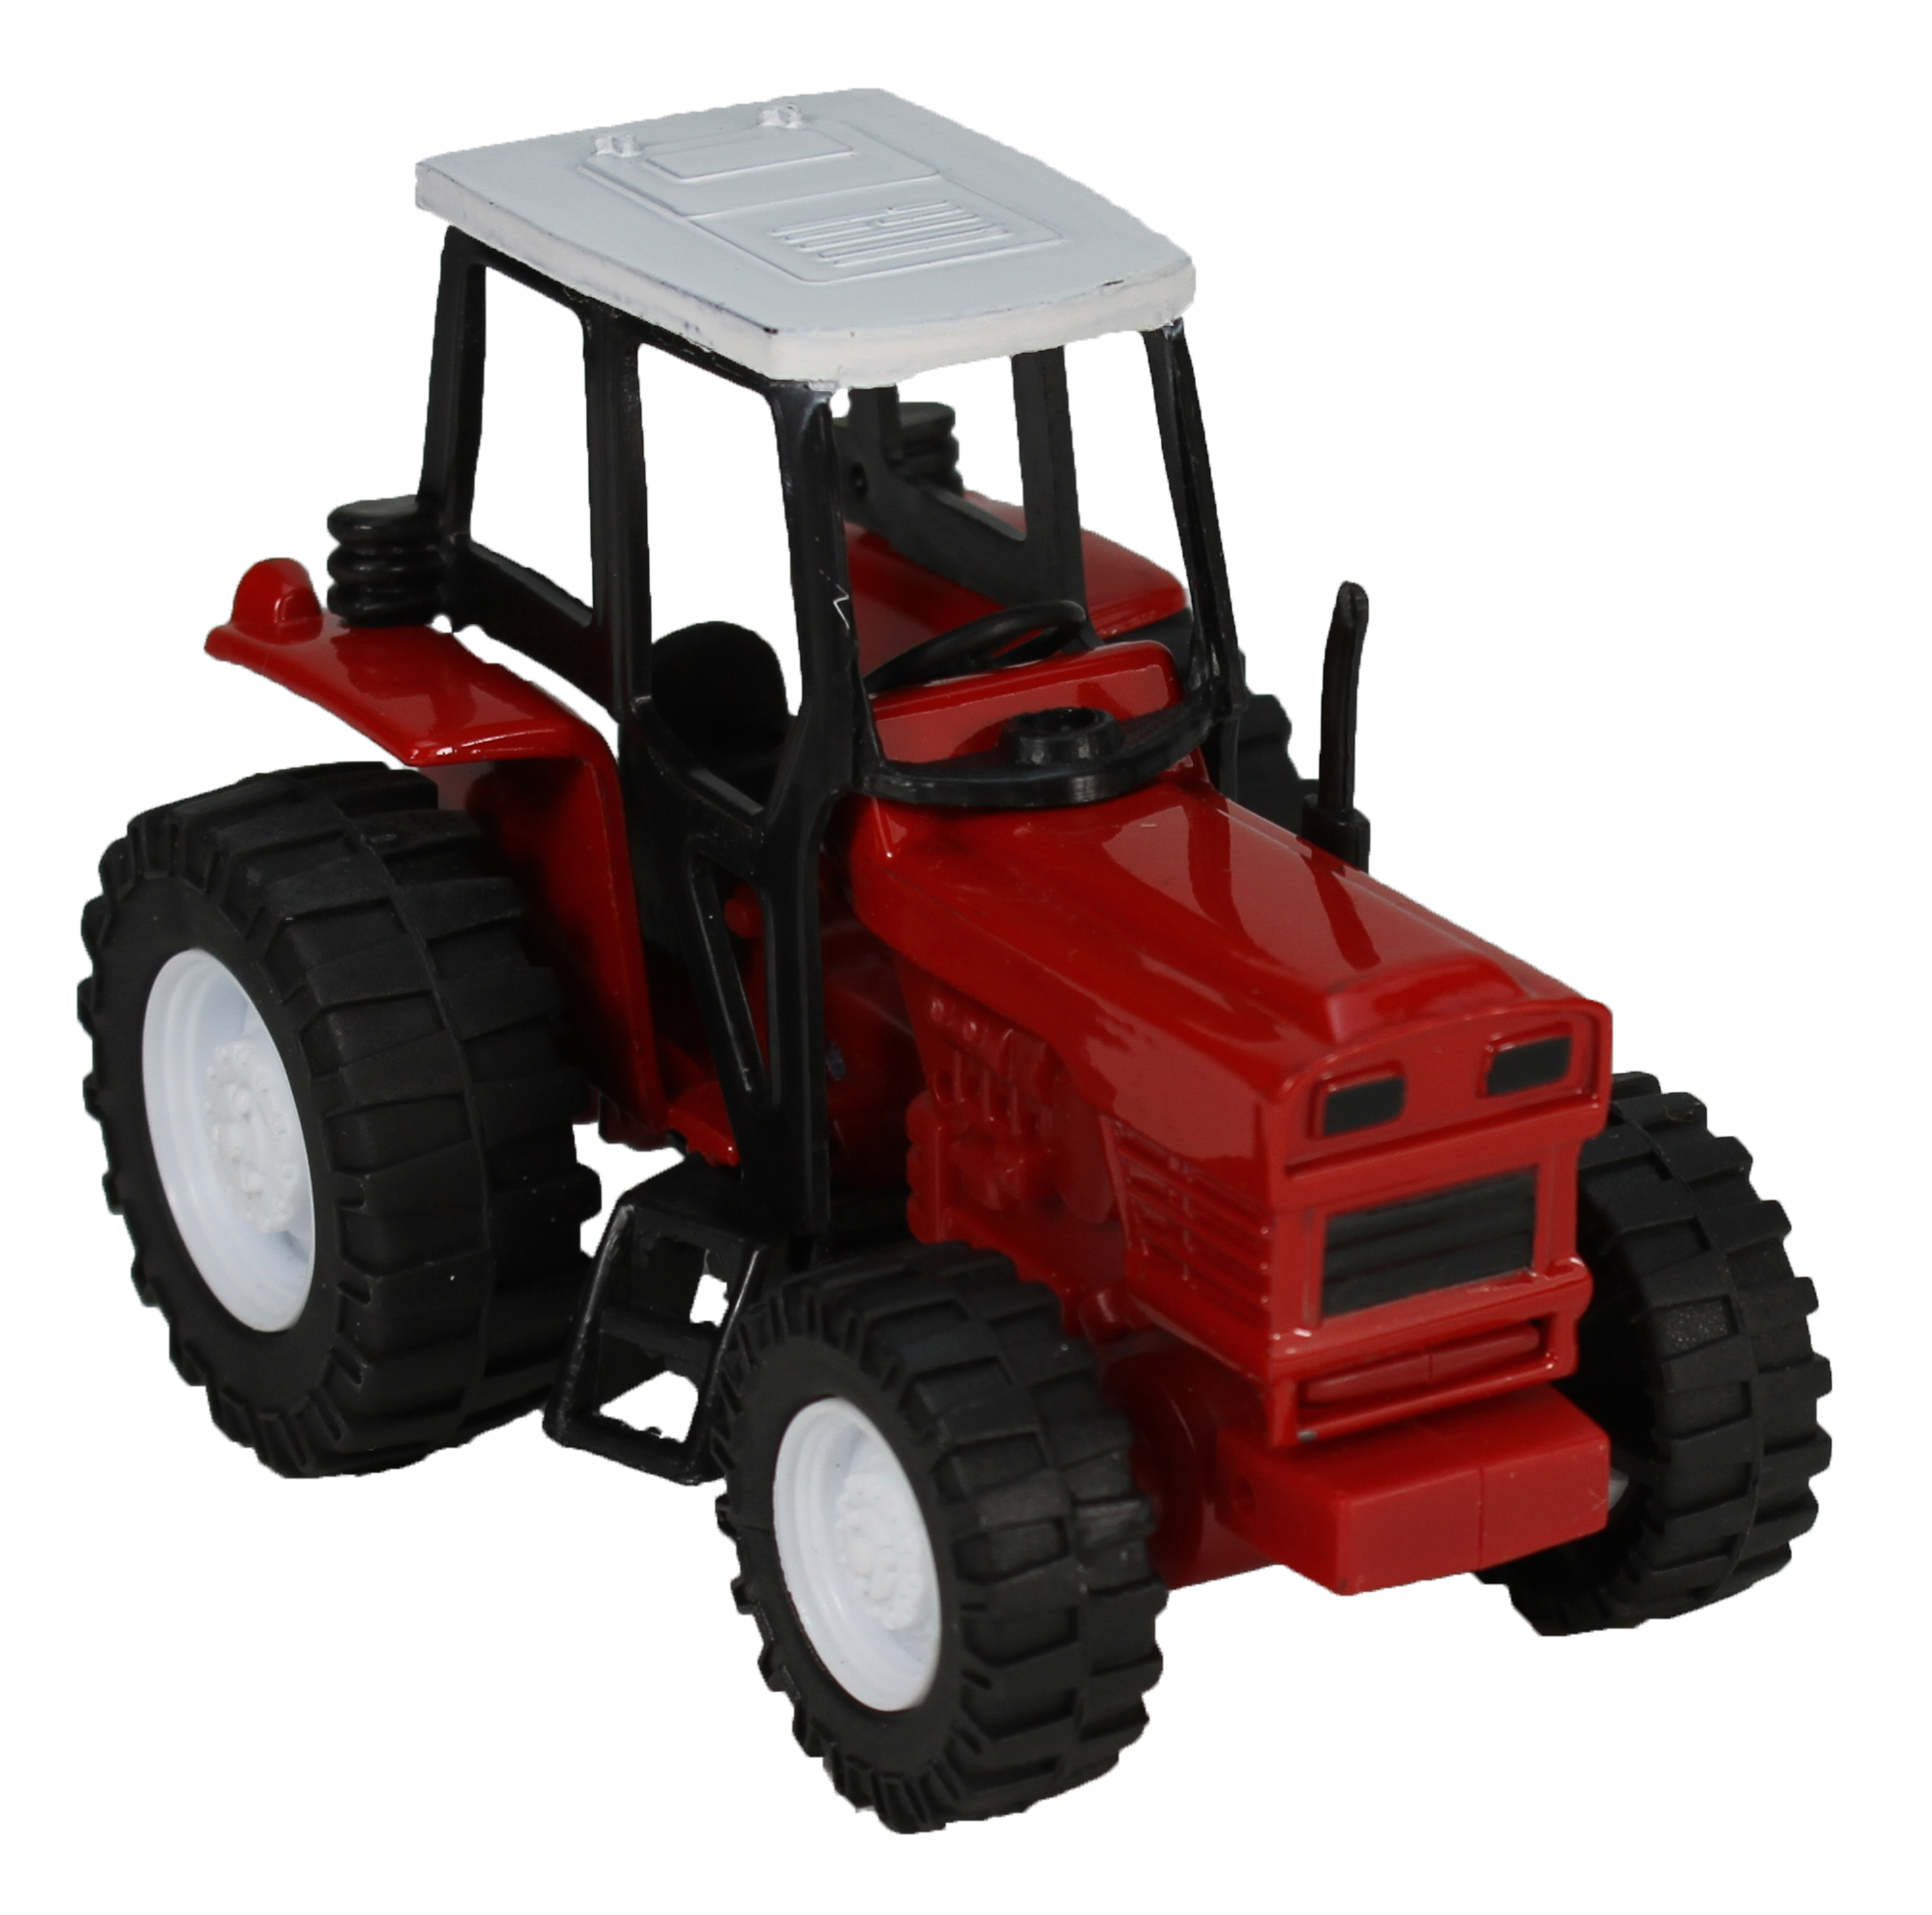 Red Die-Cast Farm Tractor, 1:32 Scale by NewRay